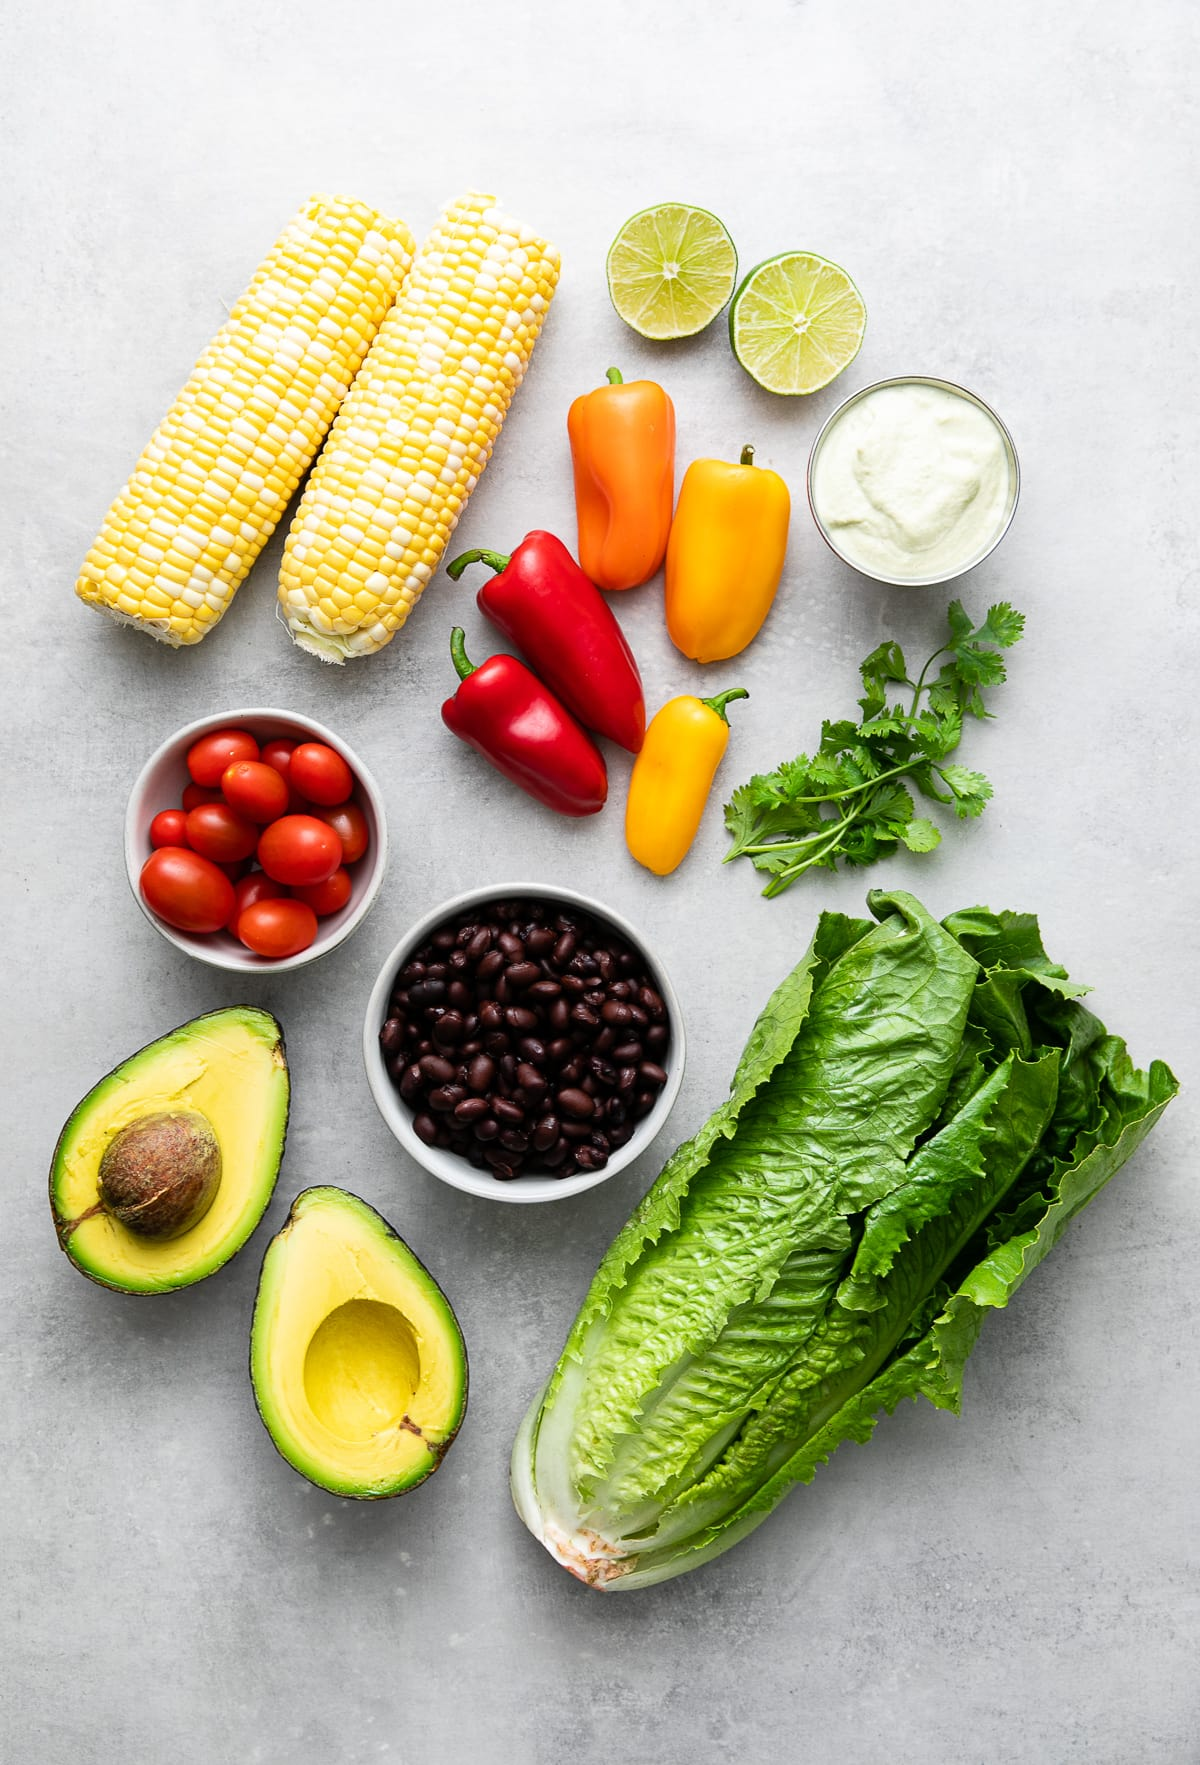 top down view of ingredients used to make healthy southwestern salad recipe.